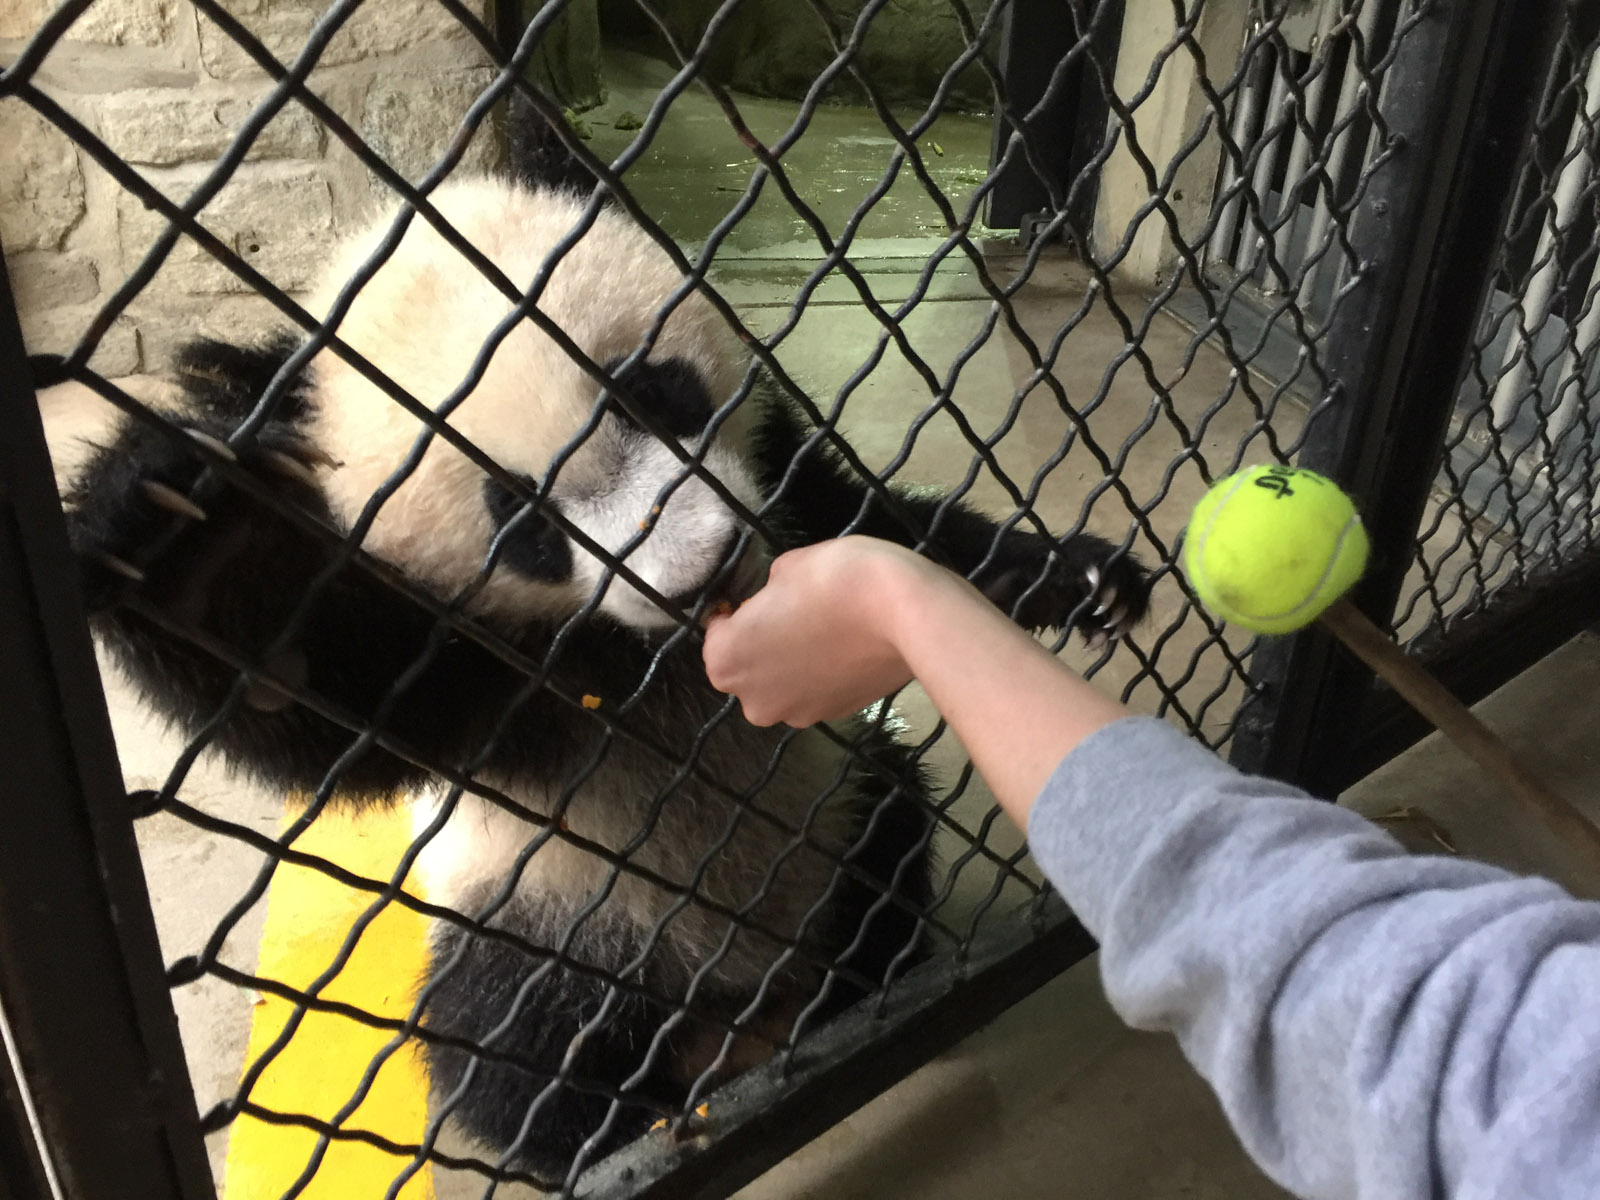 Go behind the scenes with Bei Bei